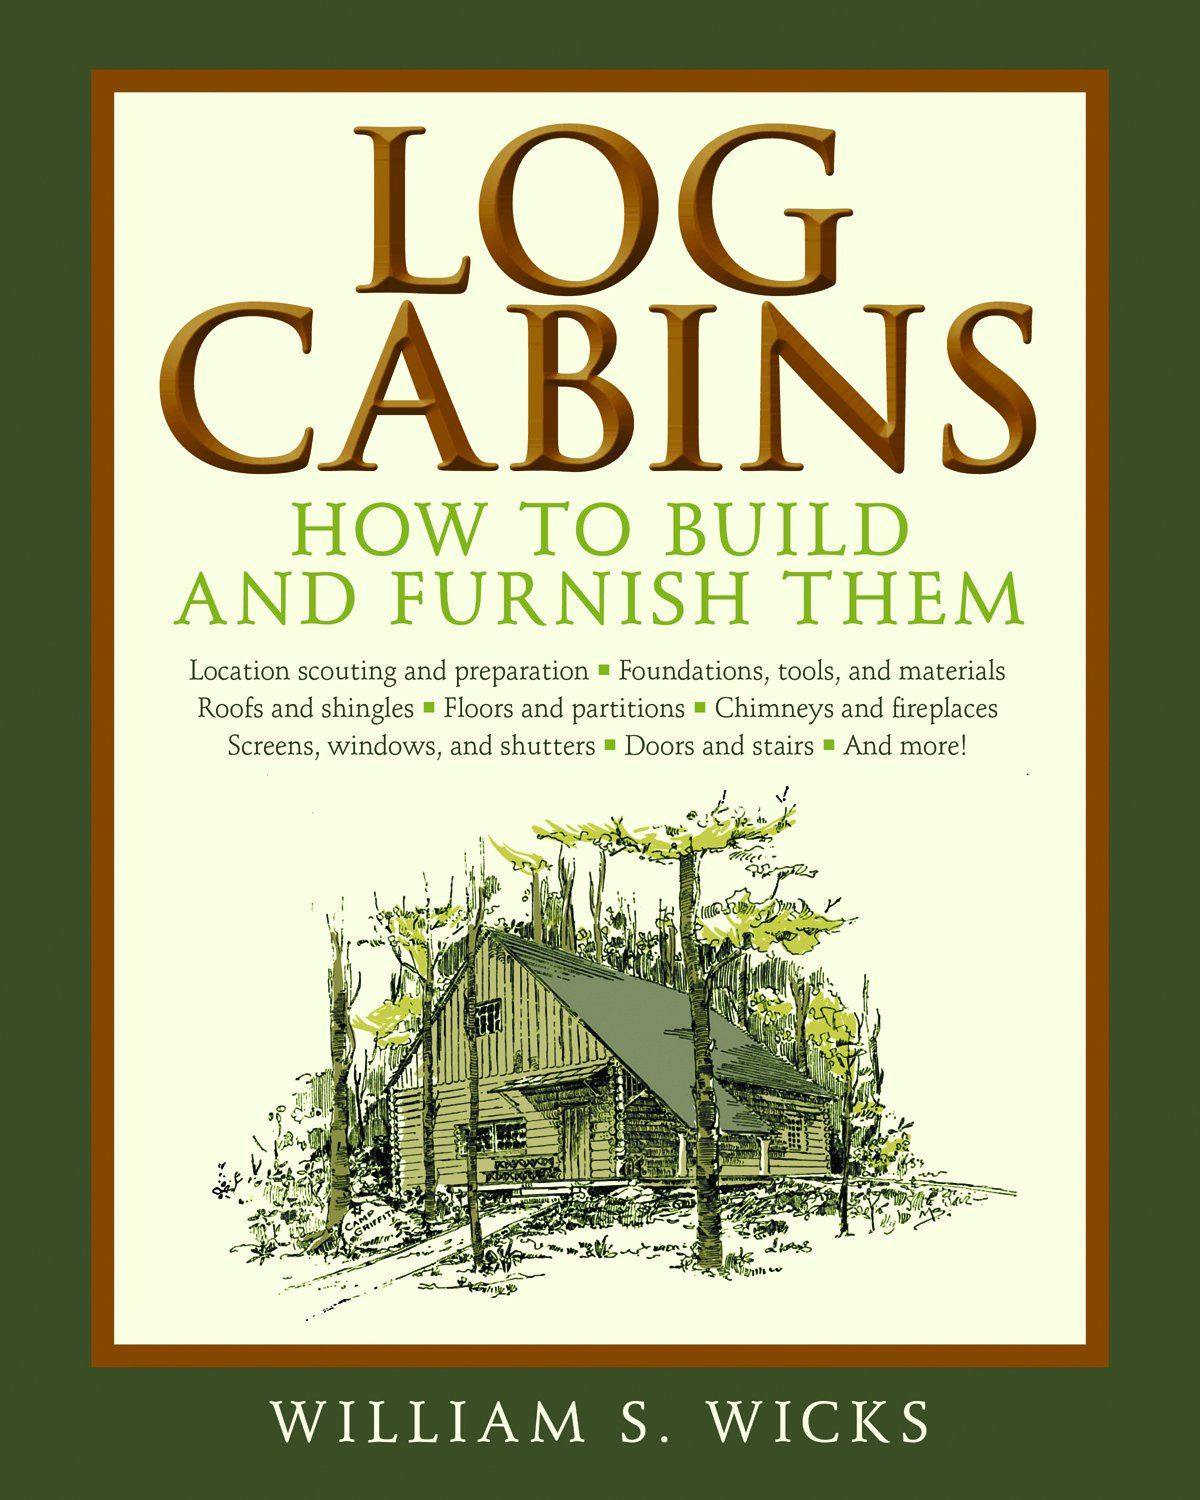 Log Cabins: How to Build and Furnish Them